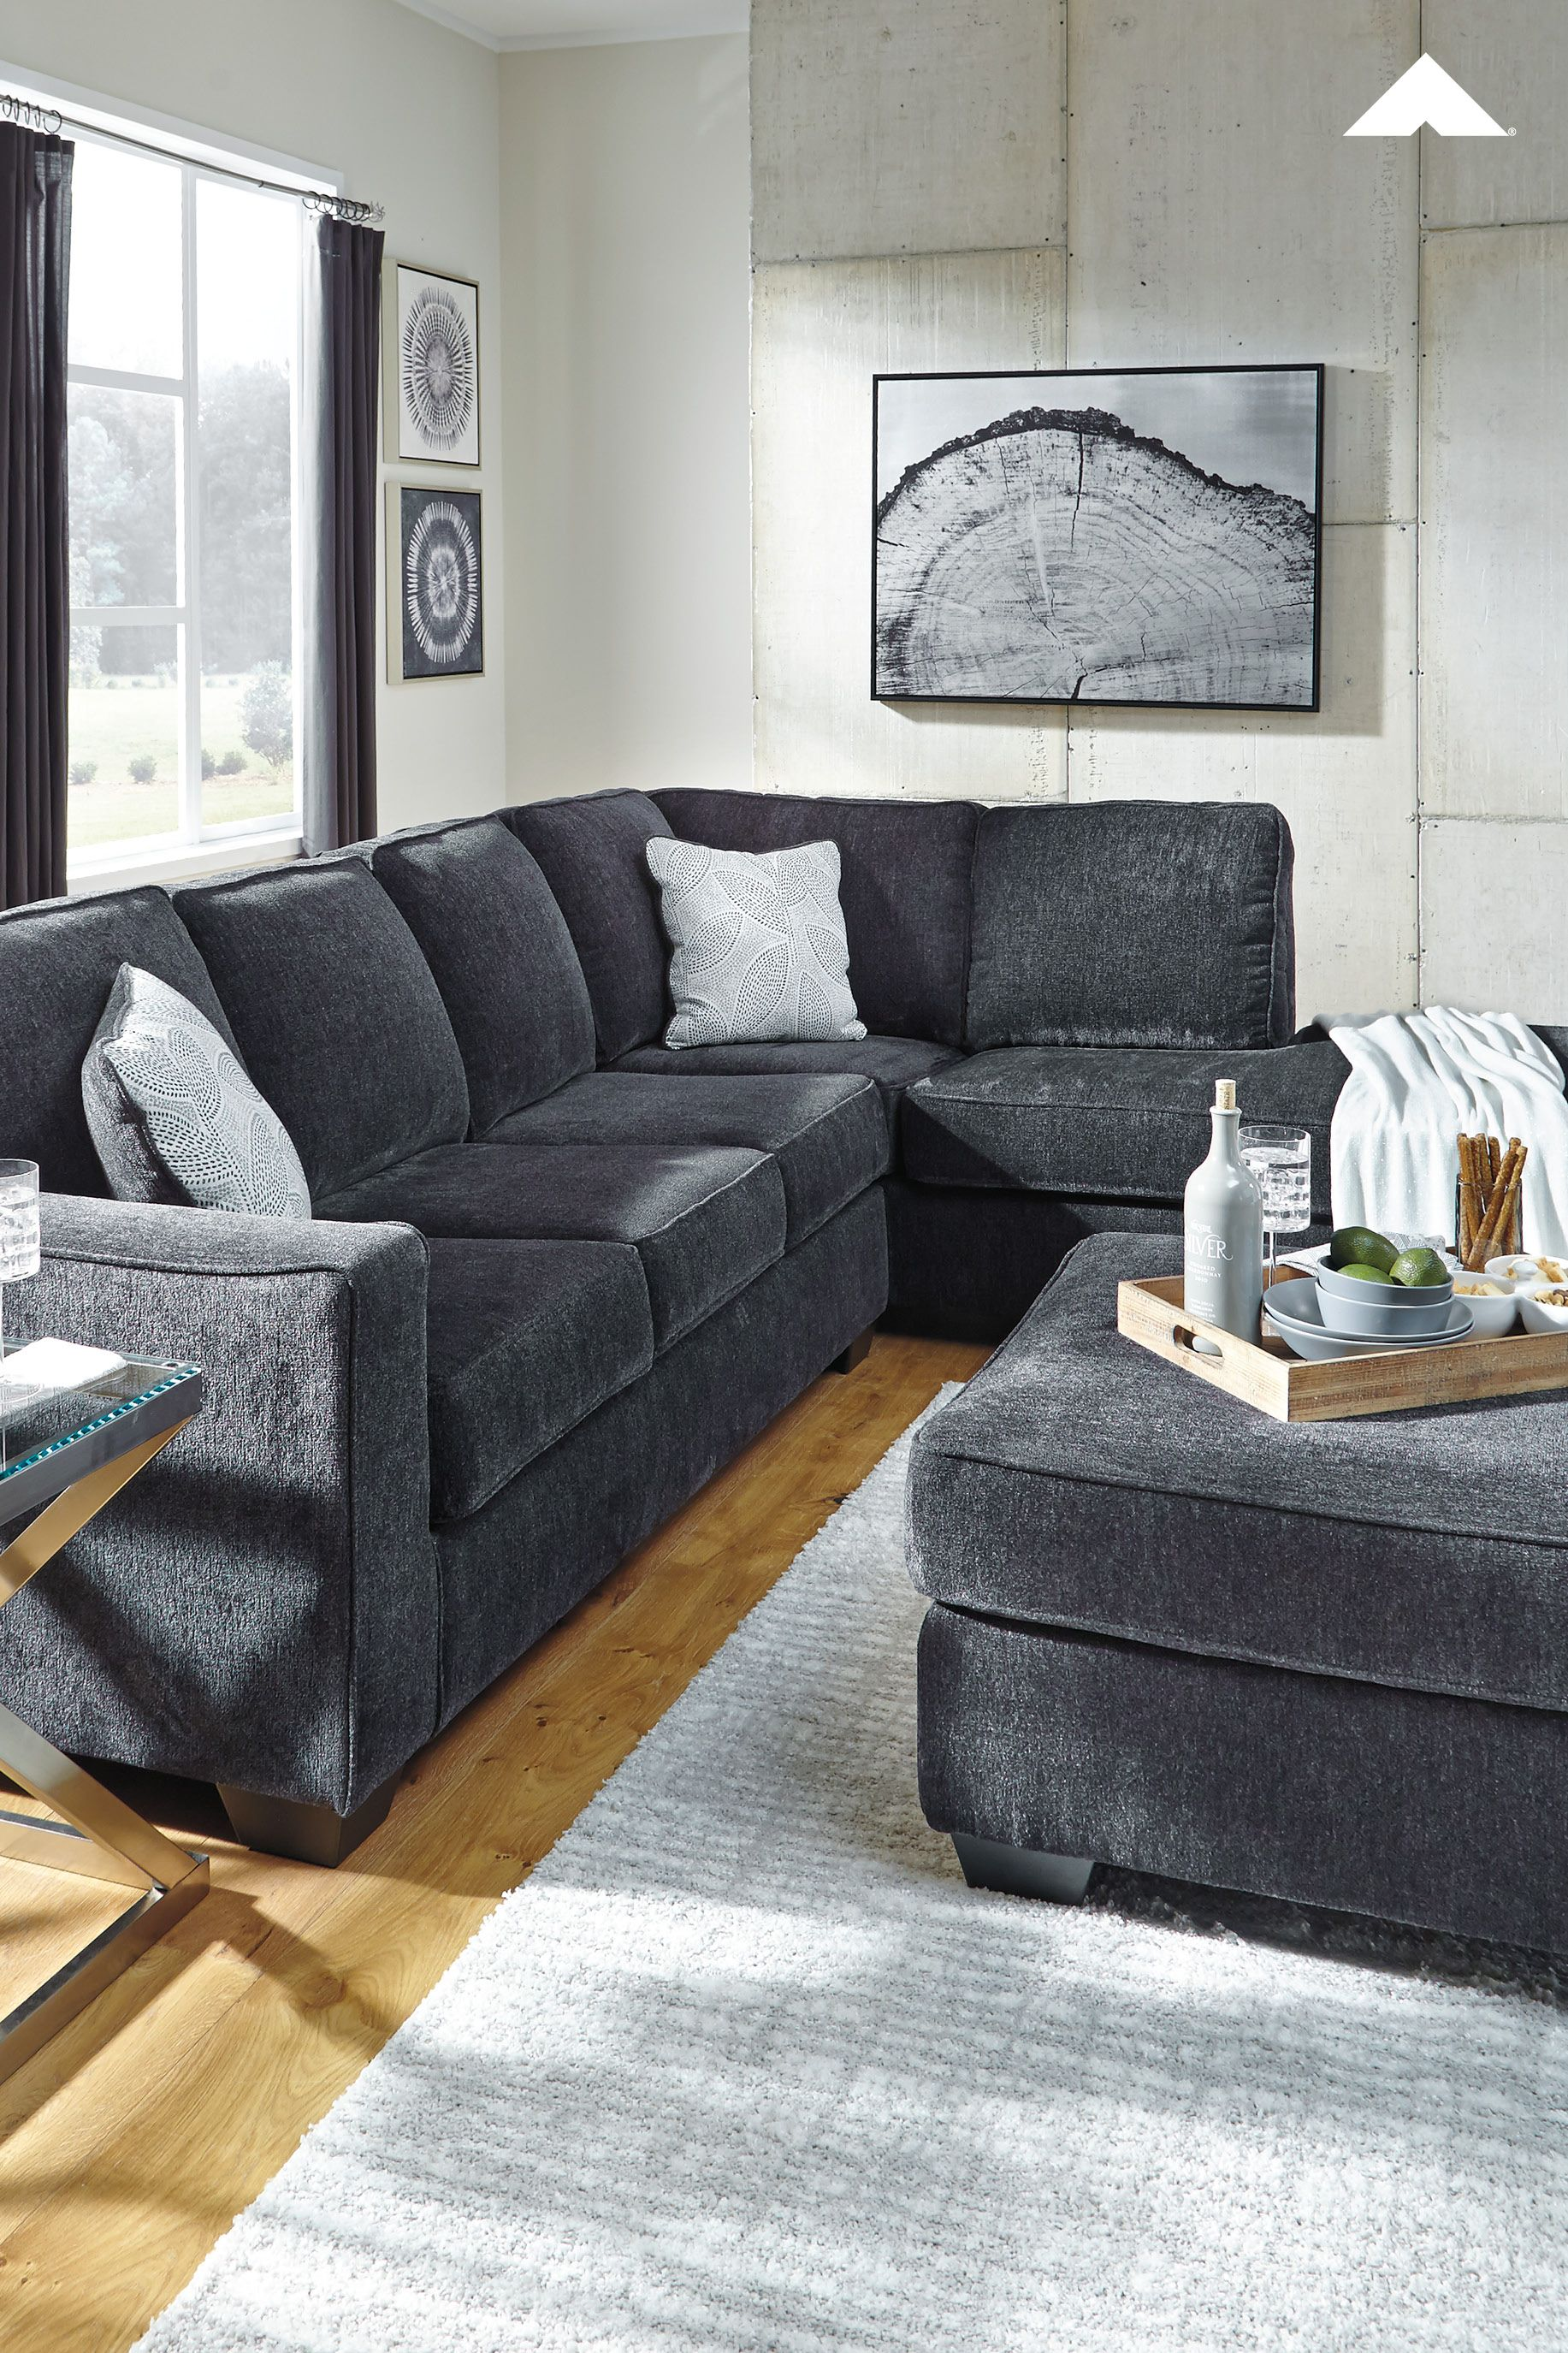 Altari Slate Sectional From Ashley Furniture Ashleyfurniture Sectional Sofa Sofa Design Sectional